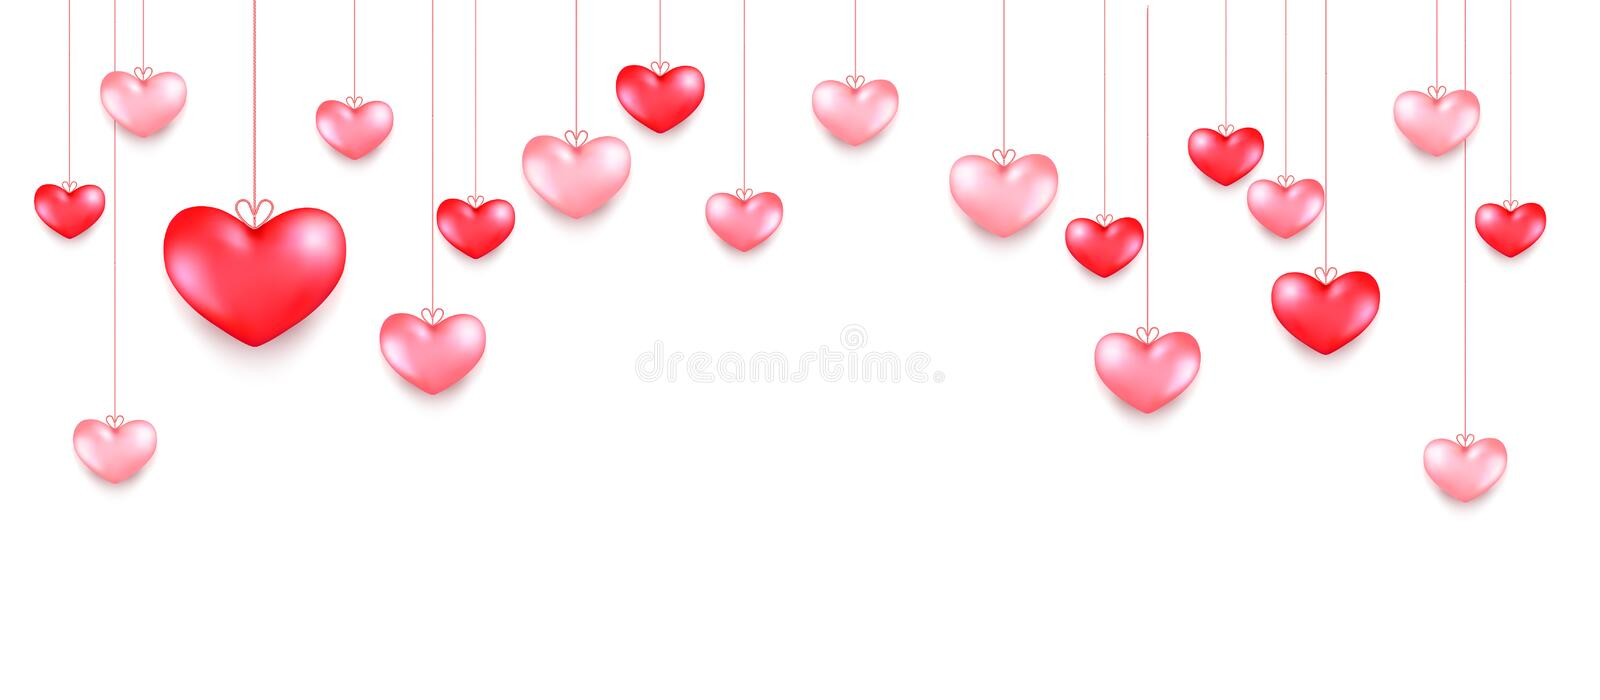 Hanging hearts. Valentines day greeting card design in 3d style on white background. Isolated objects for celebration decoration design stock photography